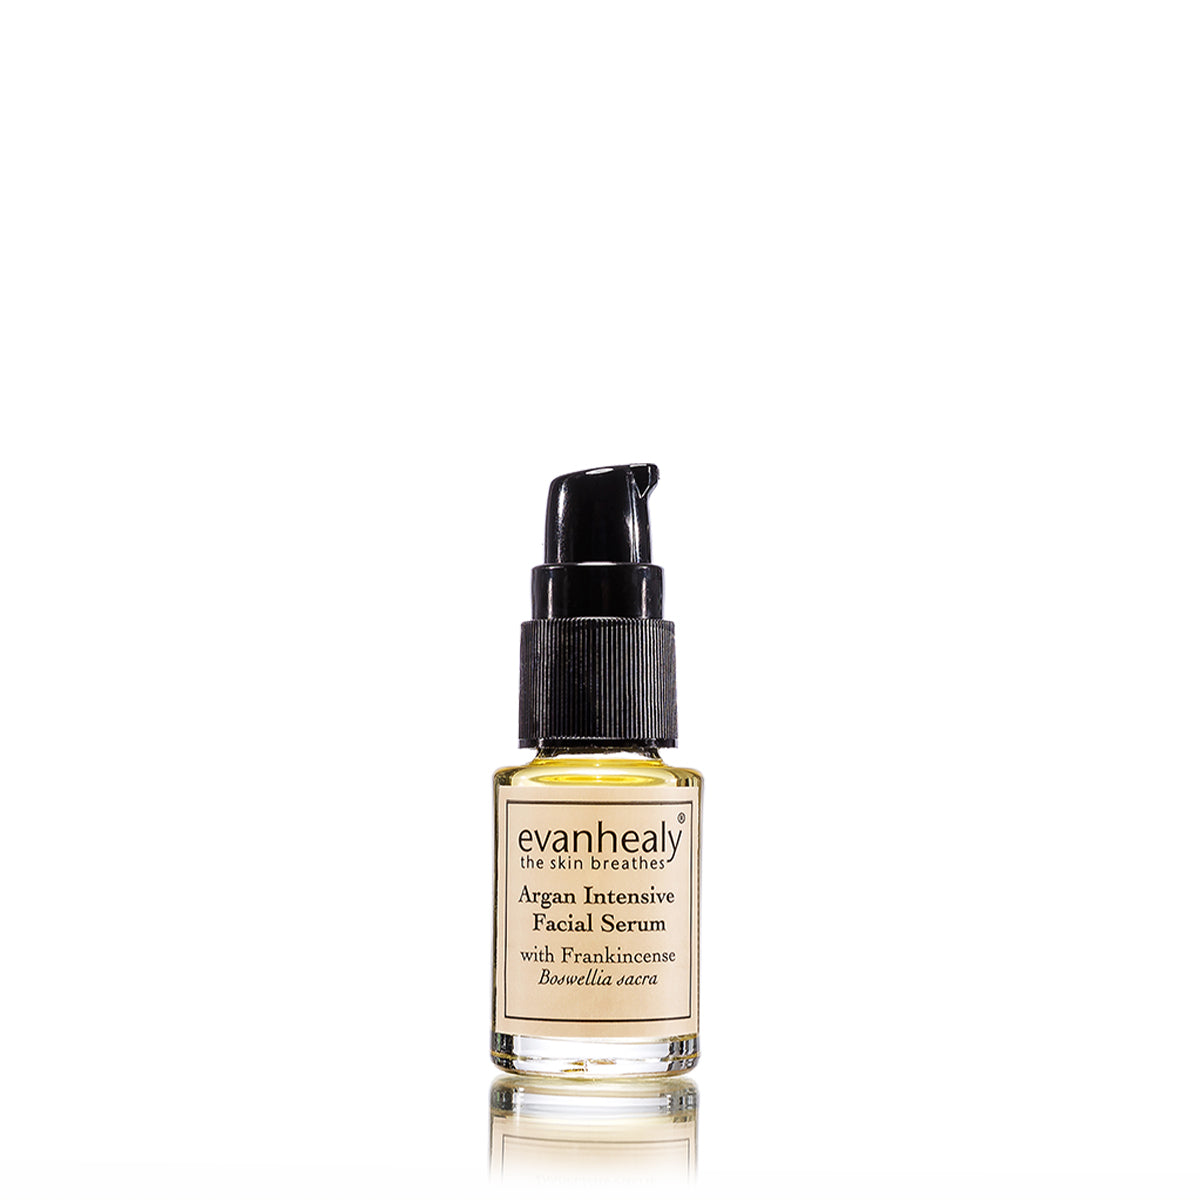 Argan Intensive Facial Serum